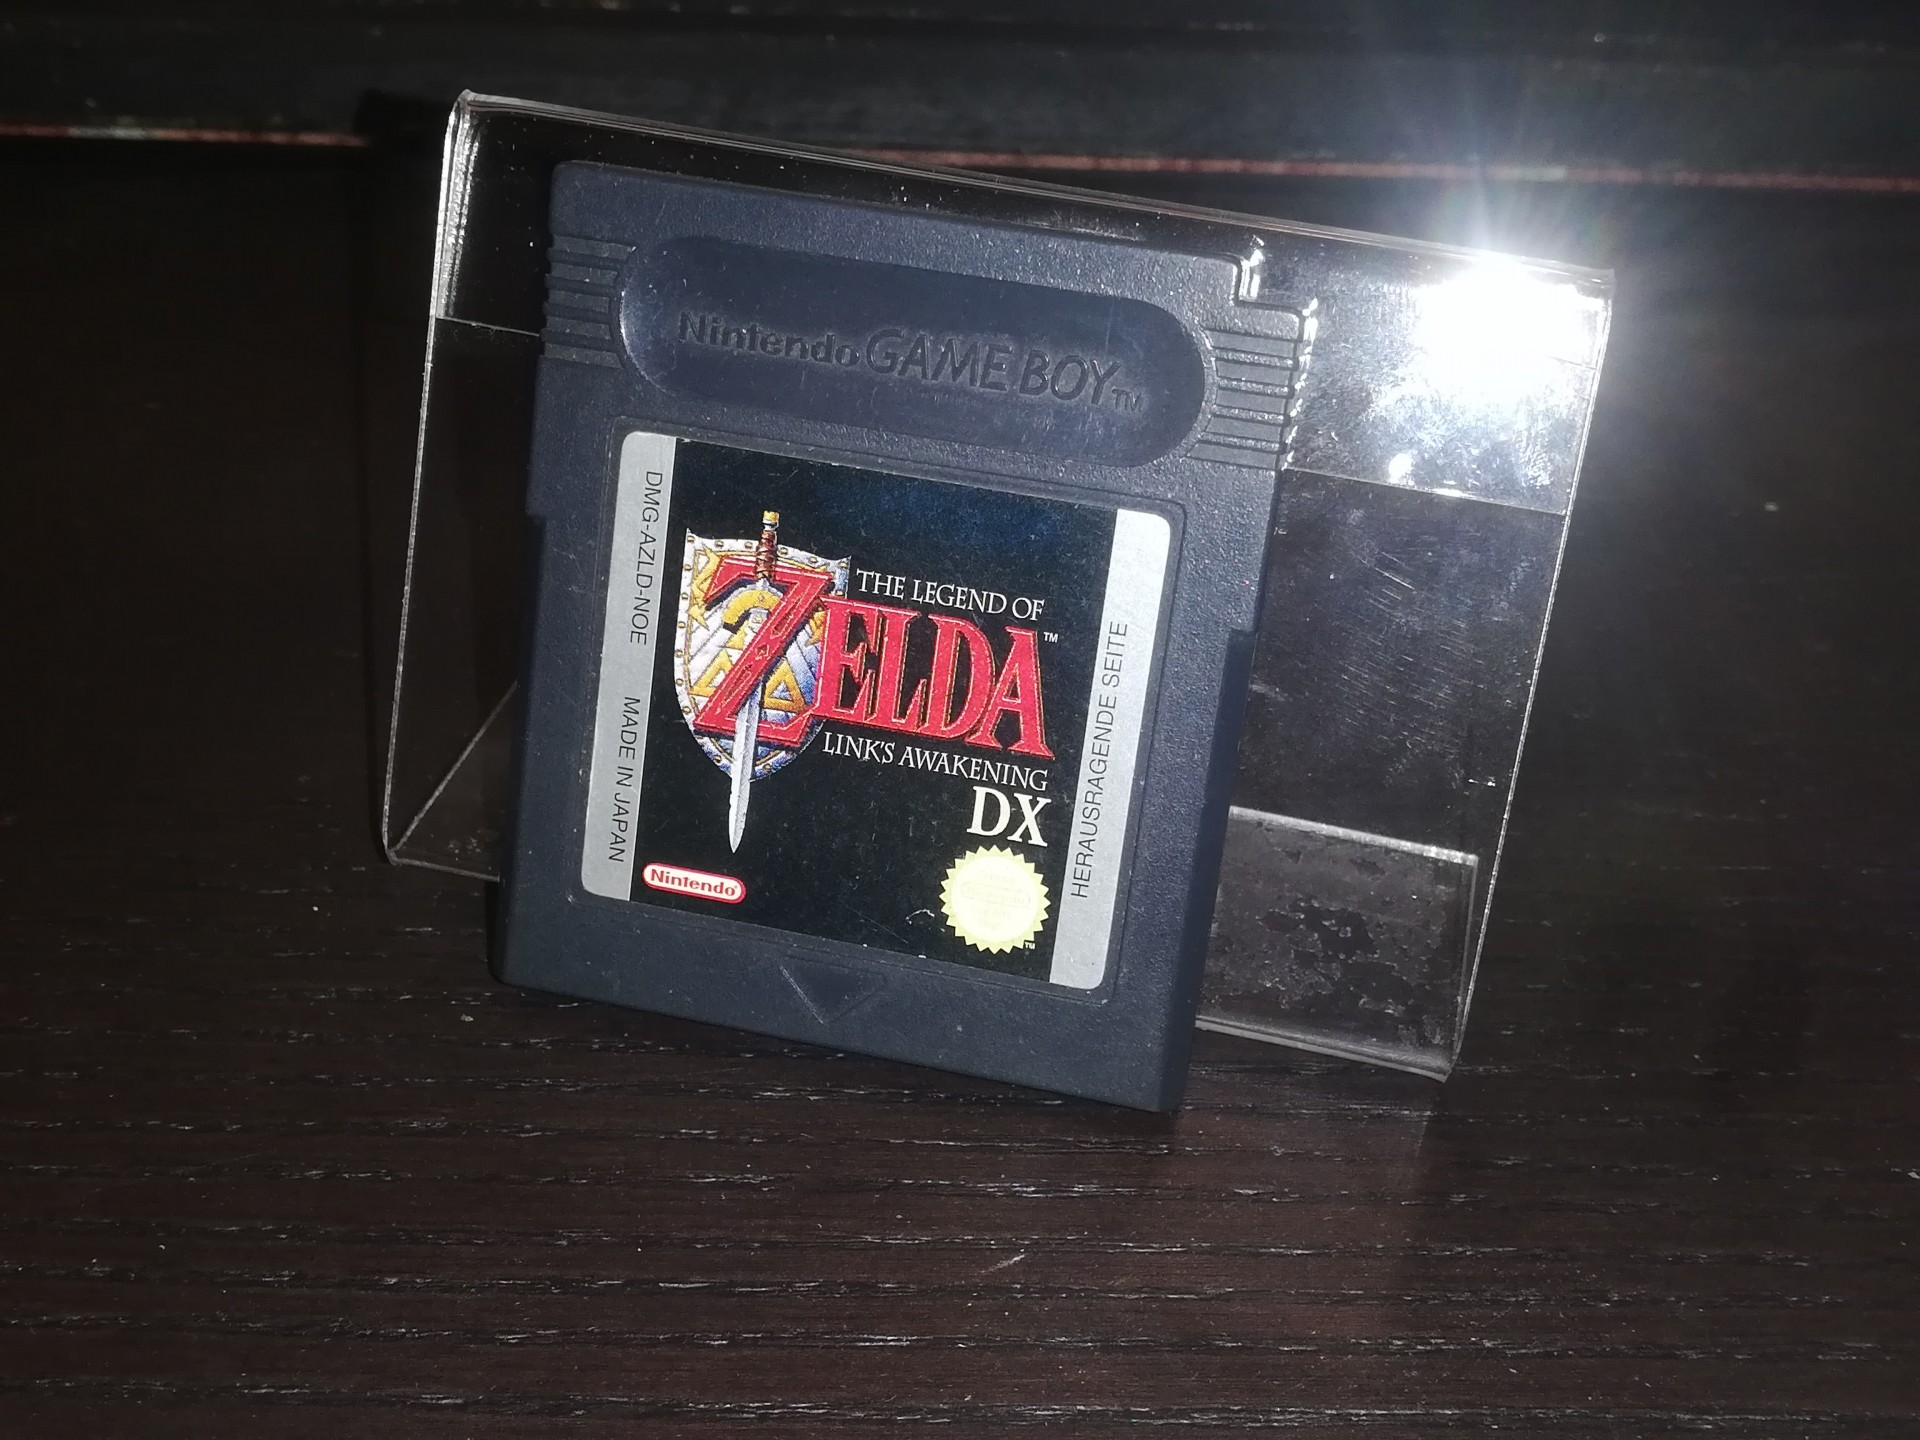 The Legend of Zelda: Link's Awakening DX [Cartucho] - GBC